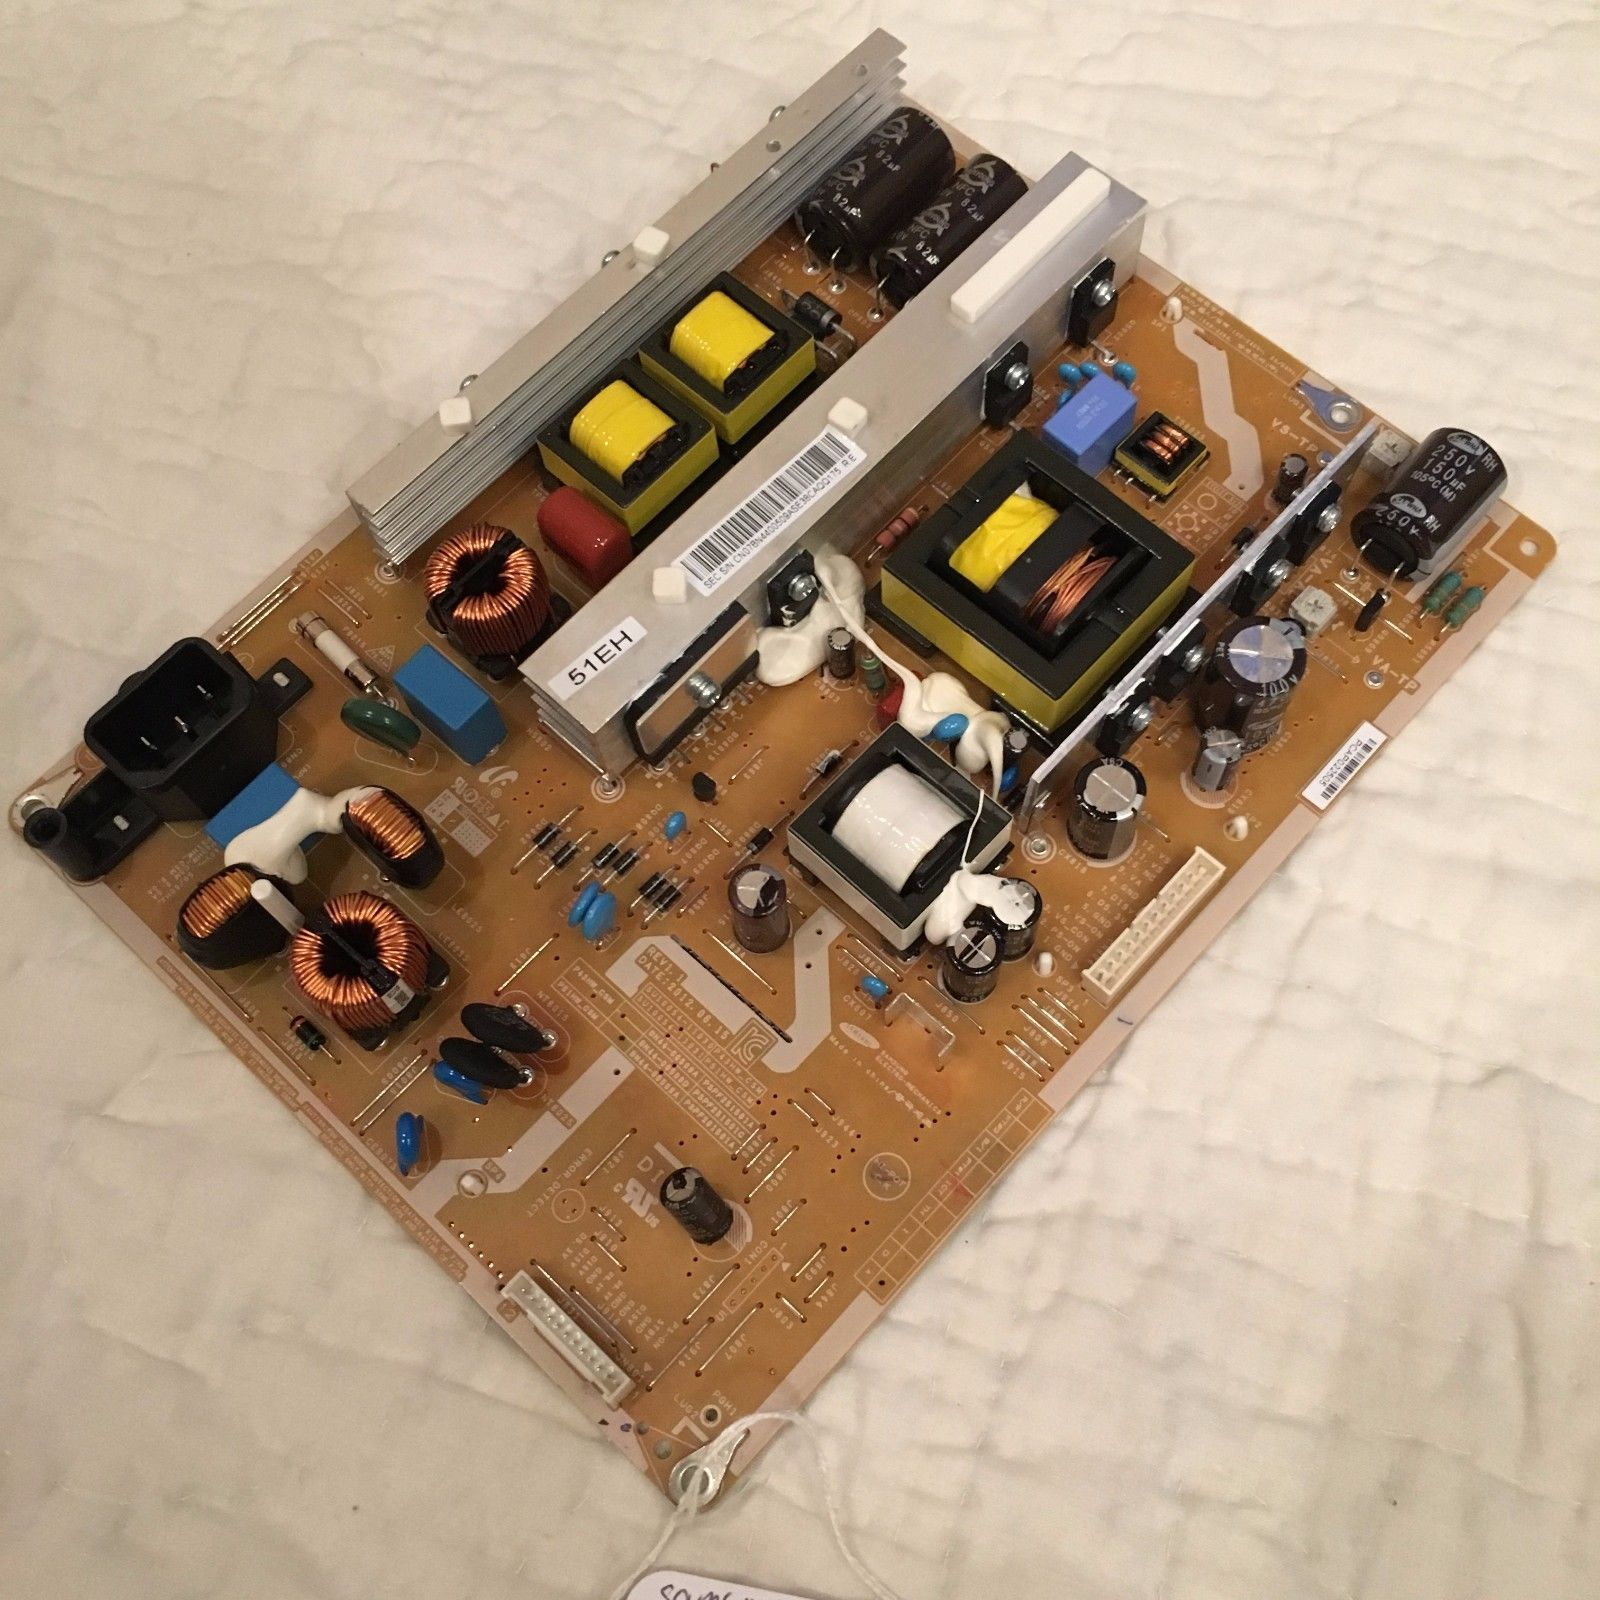 SAMSUNG BN44-00509A POWER SUPPLY BOARD FOR PN51E450 AND OTHER MO